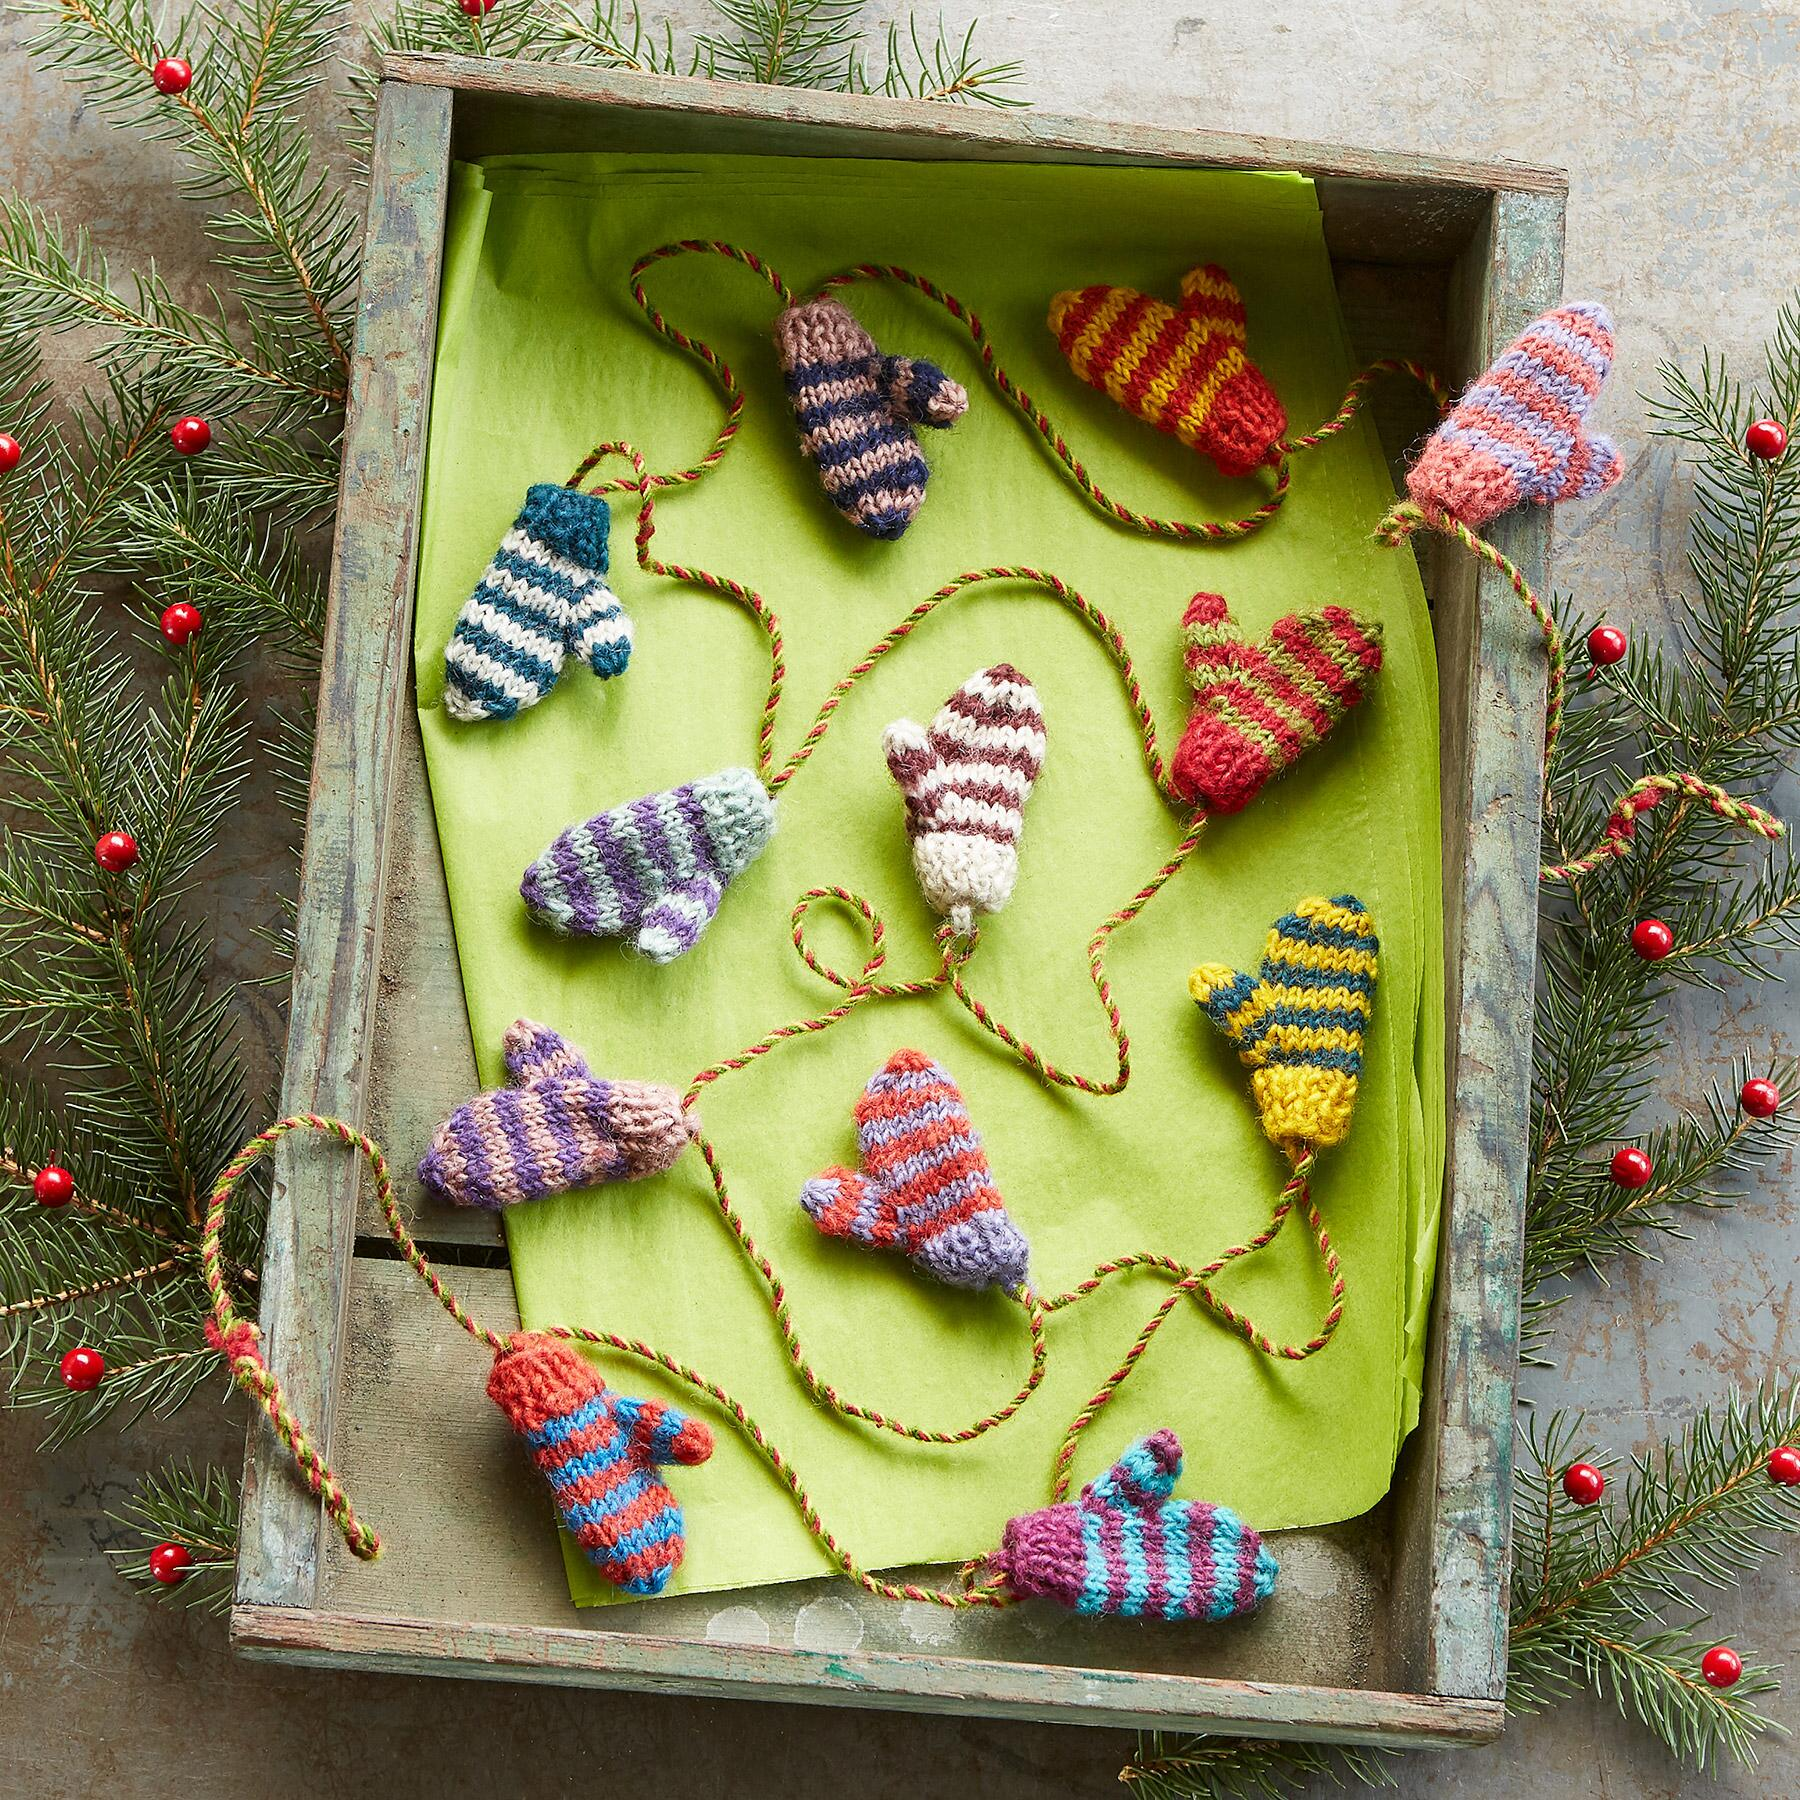 STRIPED TINY MITTENS GARLAND: View 2